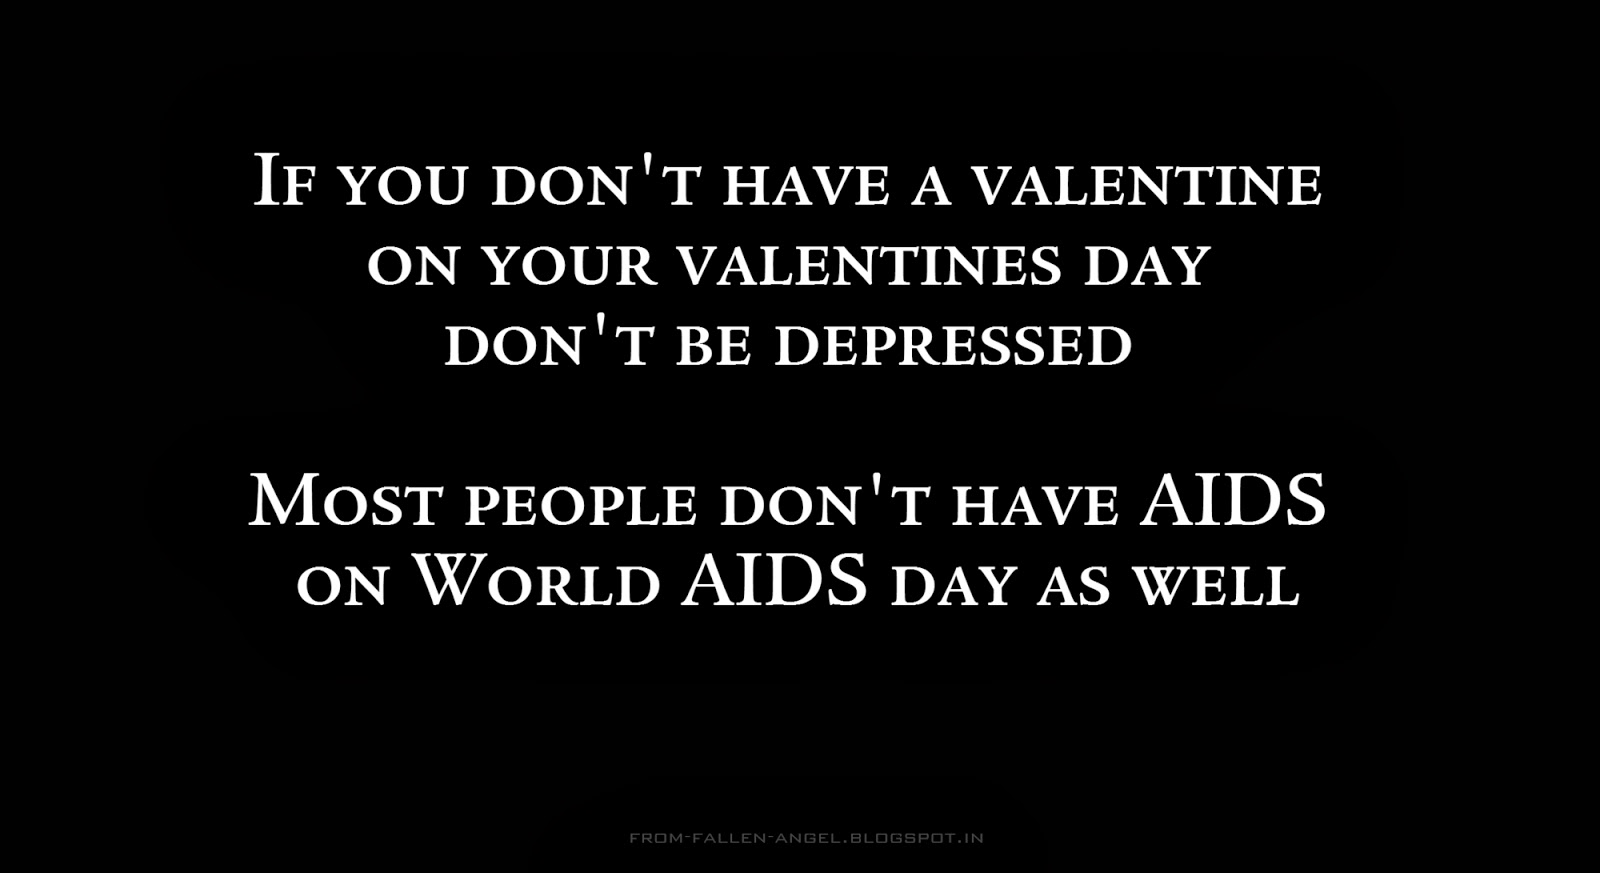 If you don't have a valentine on your valentines day don't be depressed Most people don't have AIDS on World AIDS day as well